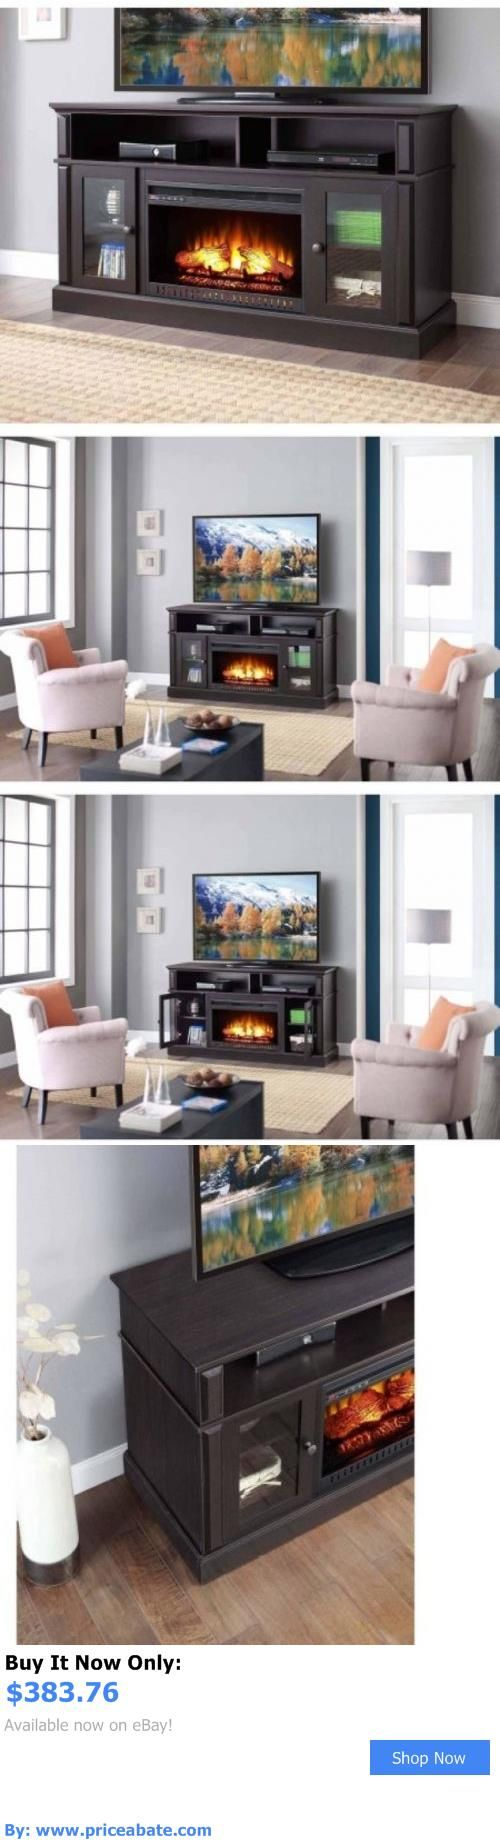 Fireplace tv stand electric fireplaces in arizona electric fireplace - Entertainment Units Tv Stands Electric Fireplace Tv Stand Heater Media Center Entertainment Console Wood Flame